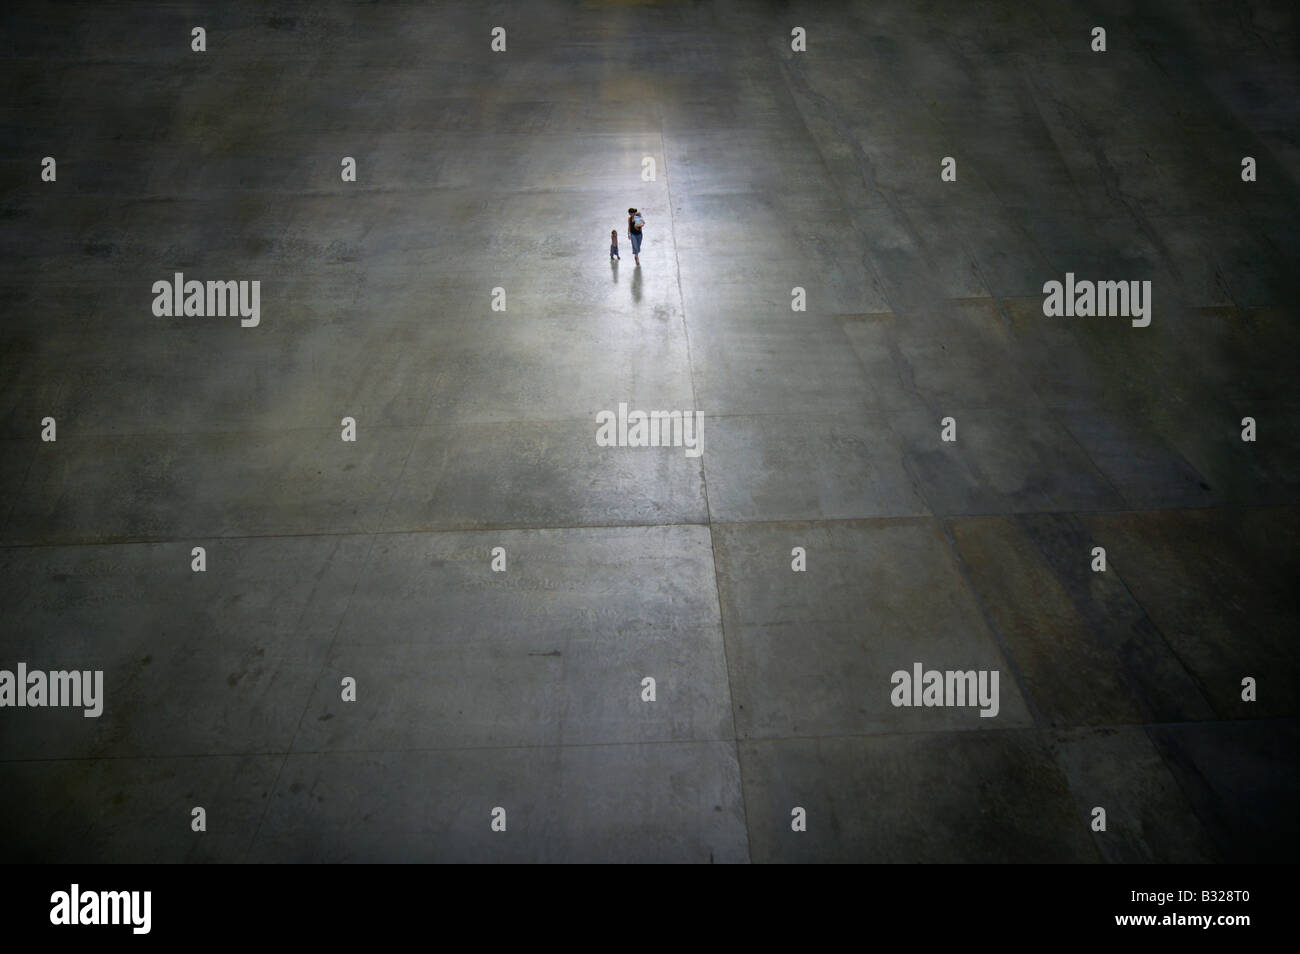 Single woman with her children at the large empty concrete area in darkness - symbol of abandoned mother - Stock Image